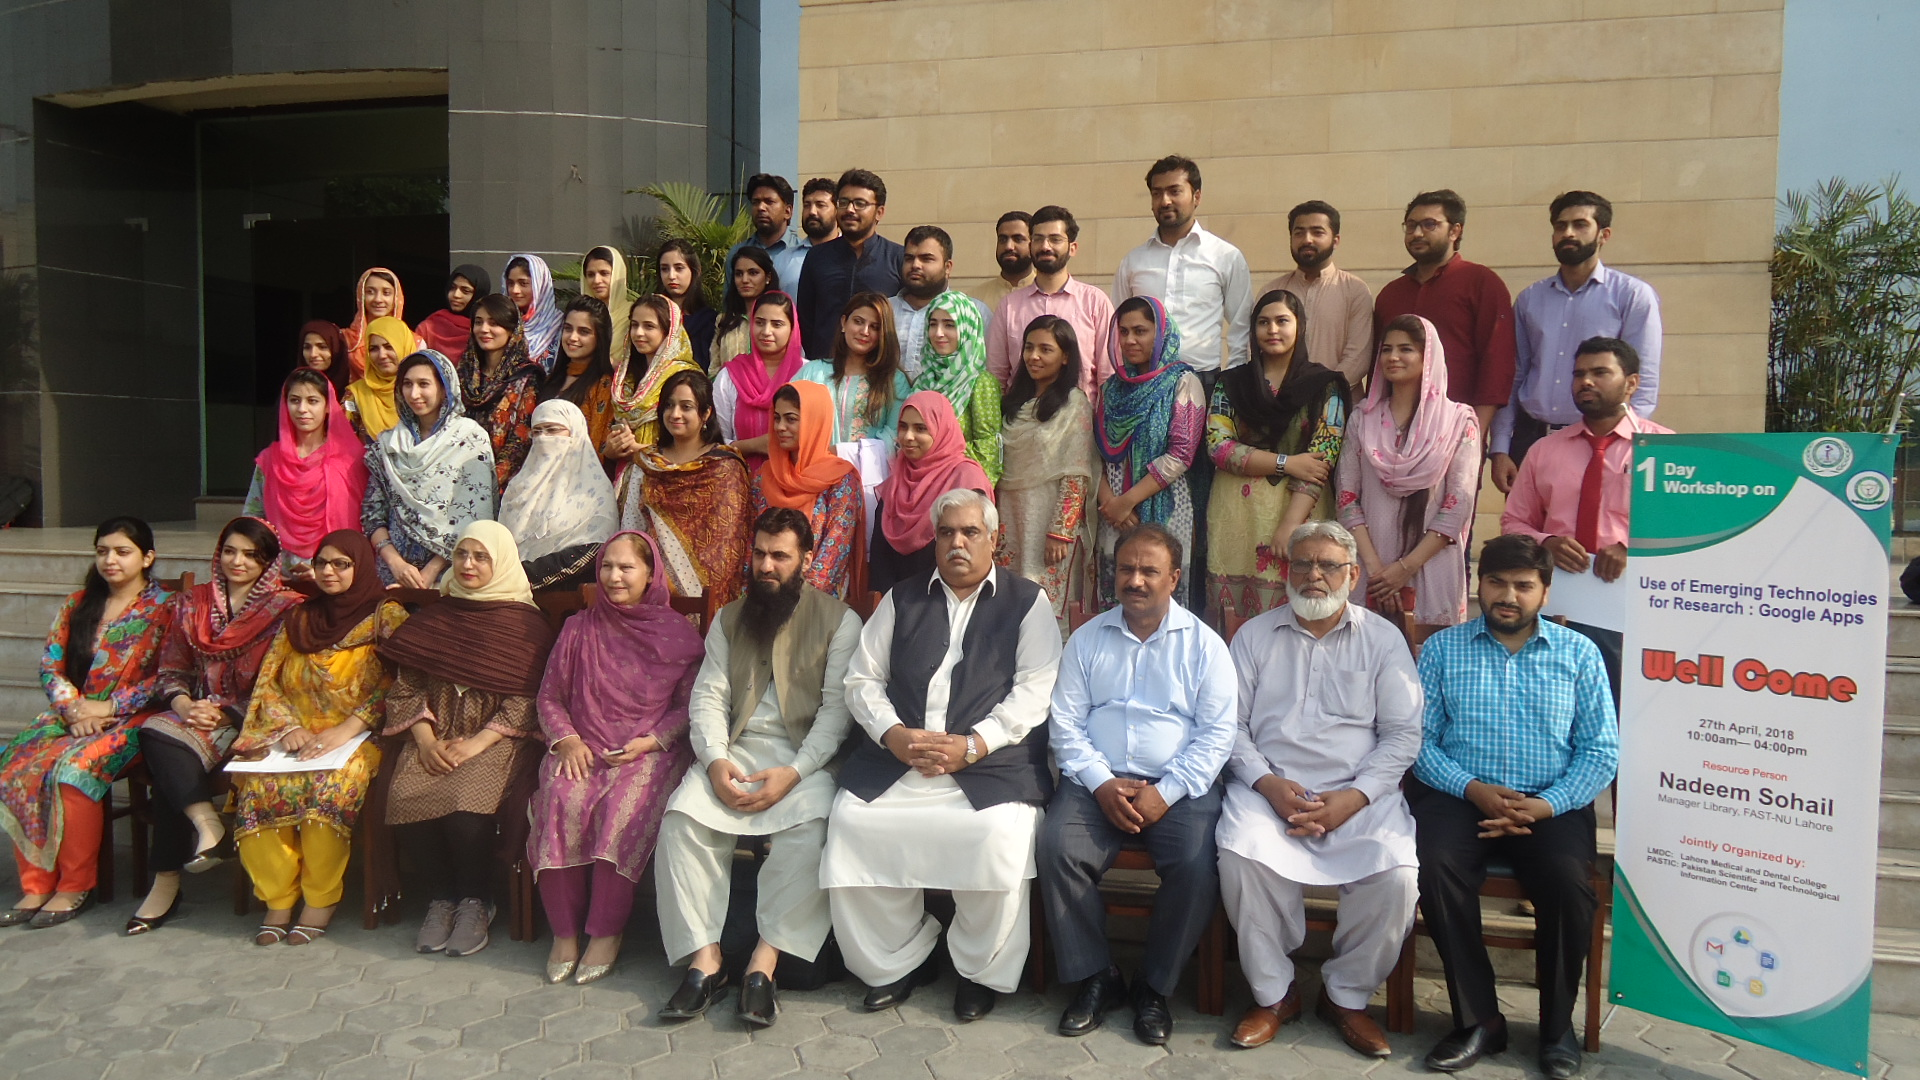 A group photo of participants of workshop, use of Emerging Technologies for Research. Google App